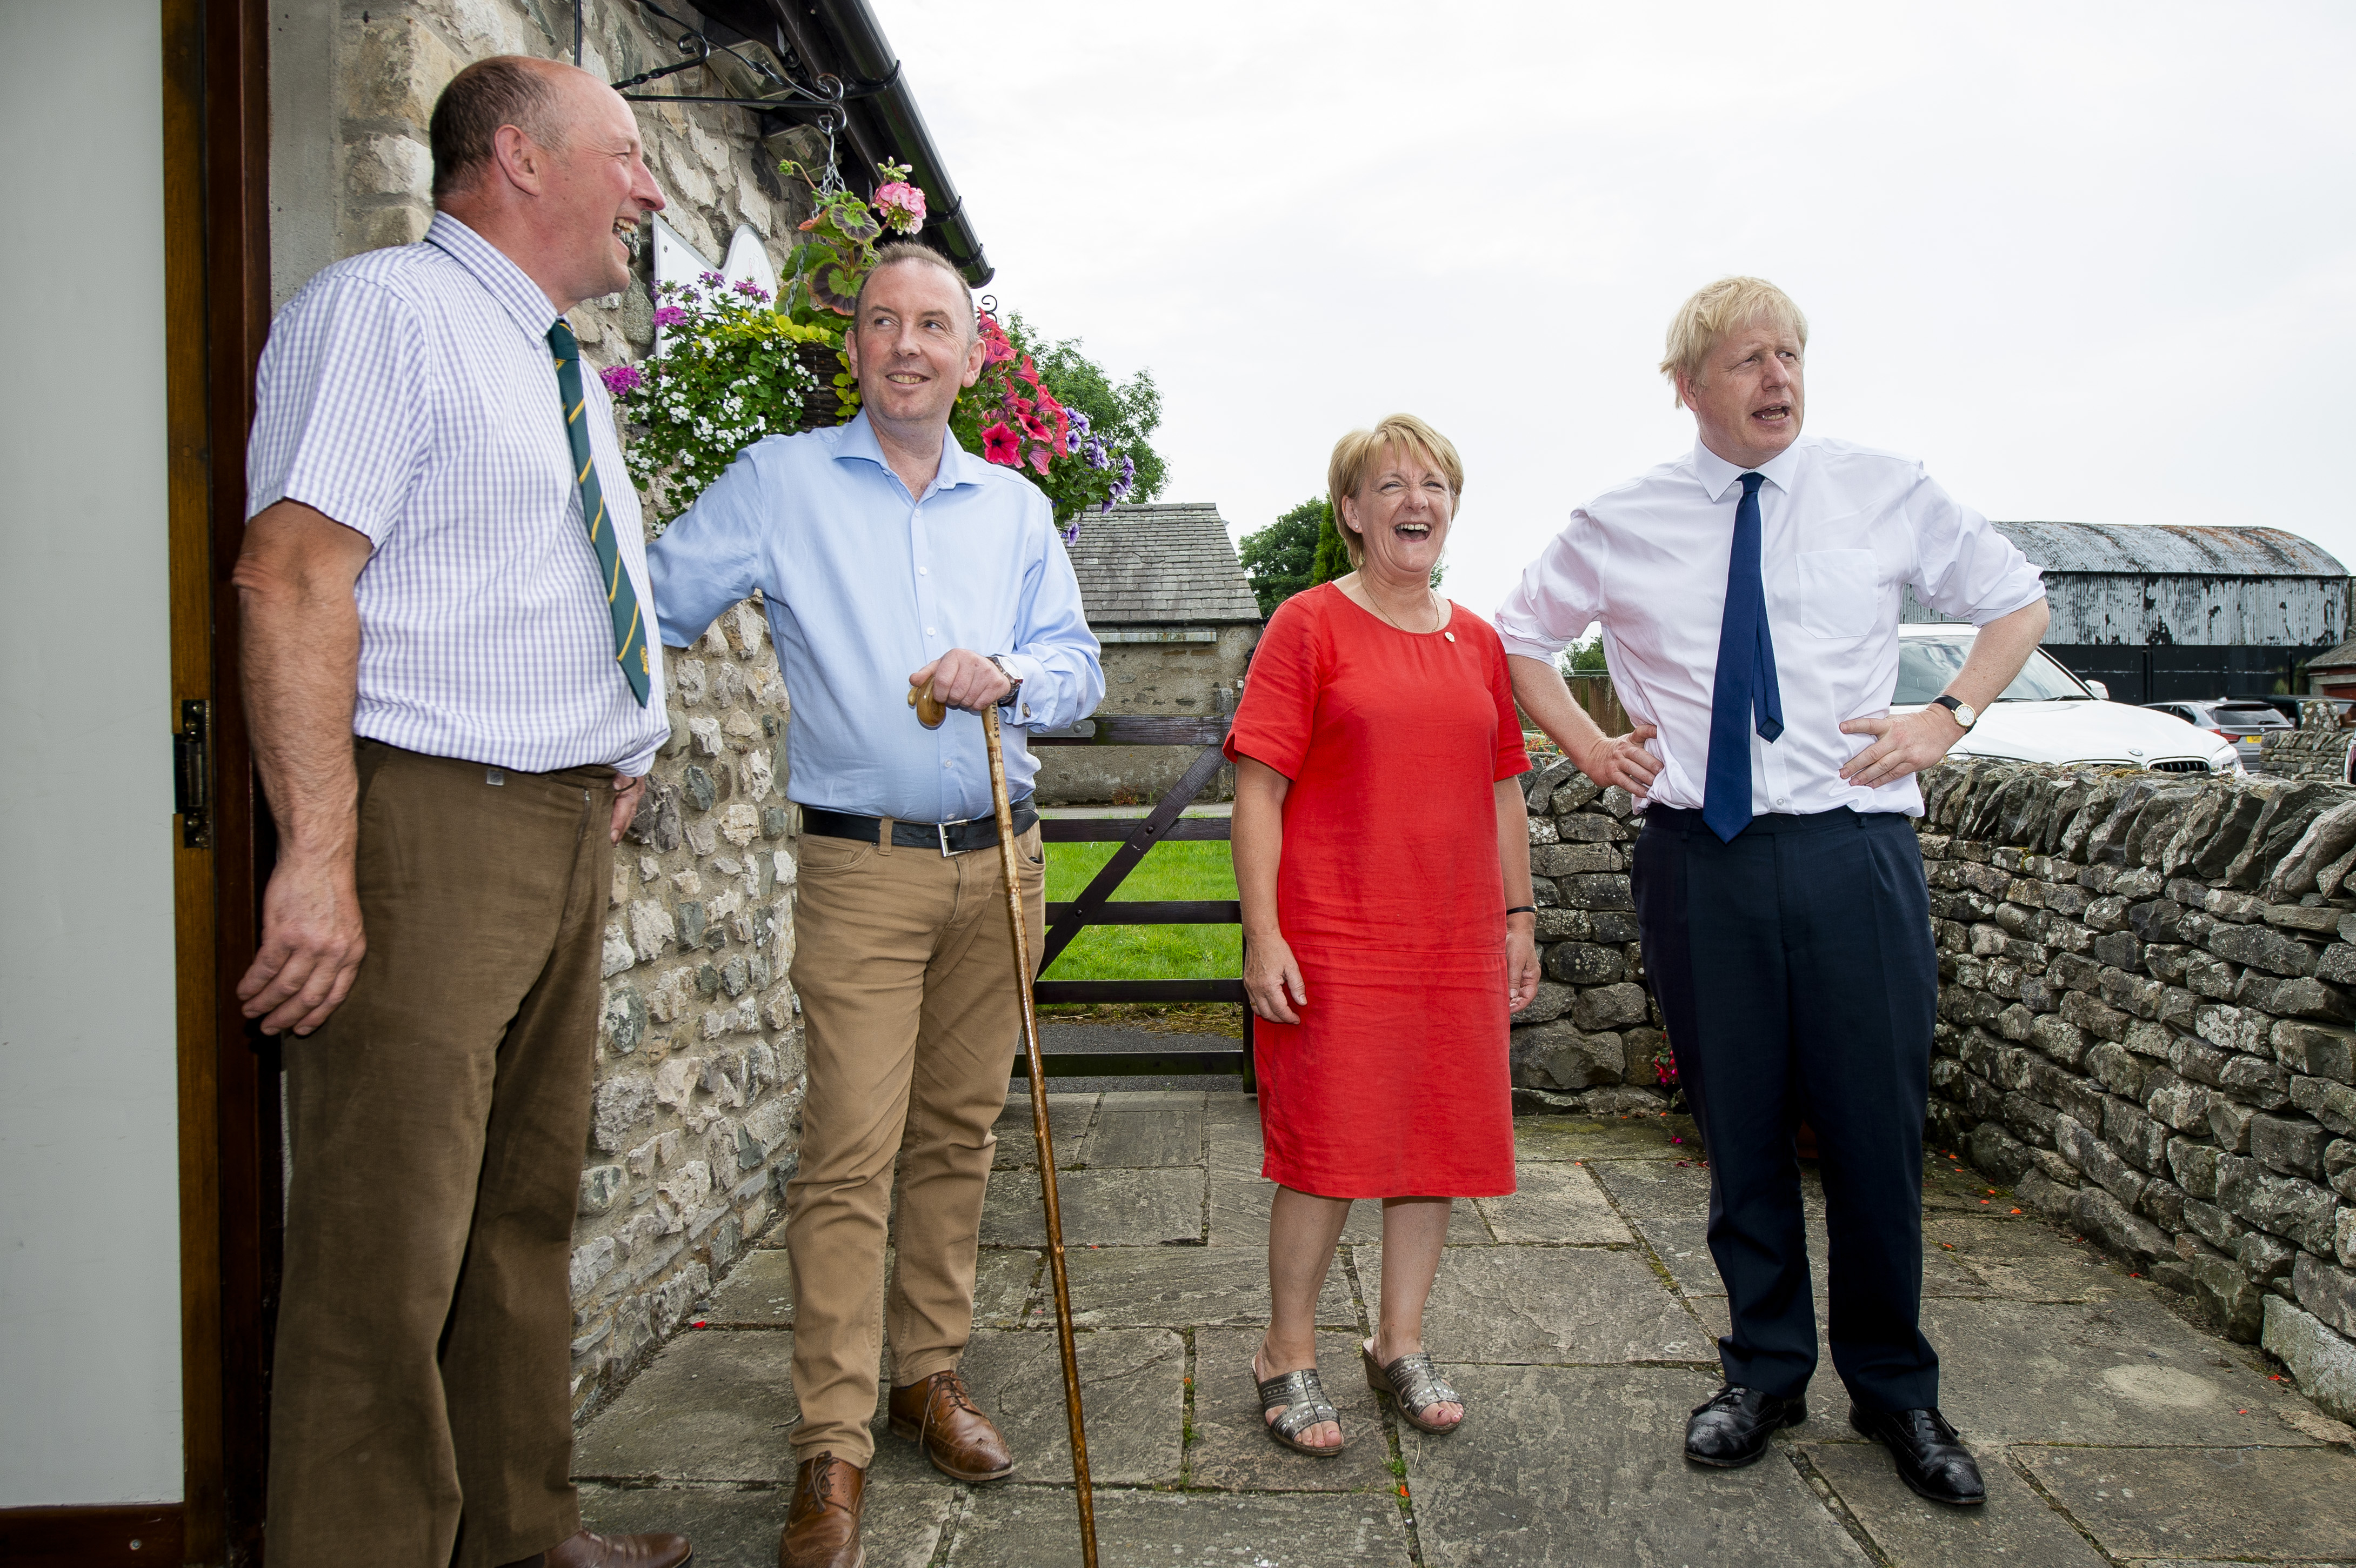 Conservative party leadership contender Boris Johnson arrives for a Tory leadership hustings in Crooklands in Cumbria.